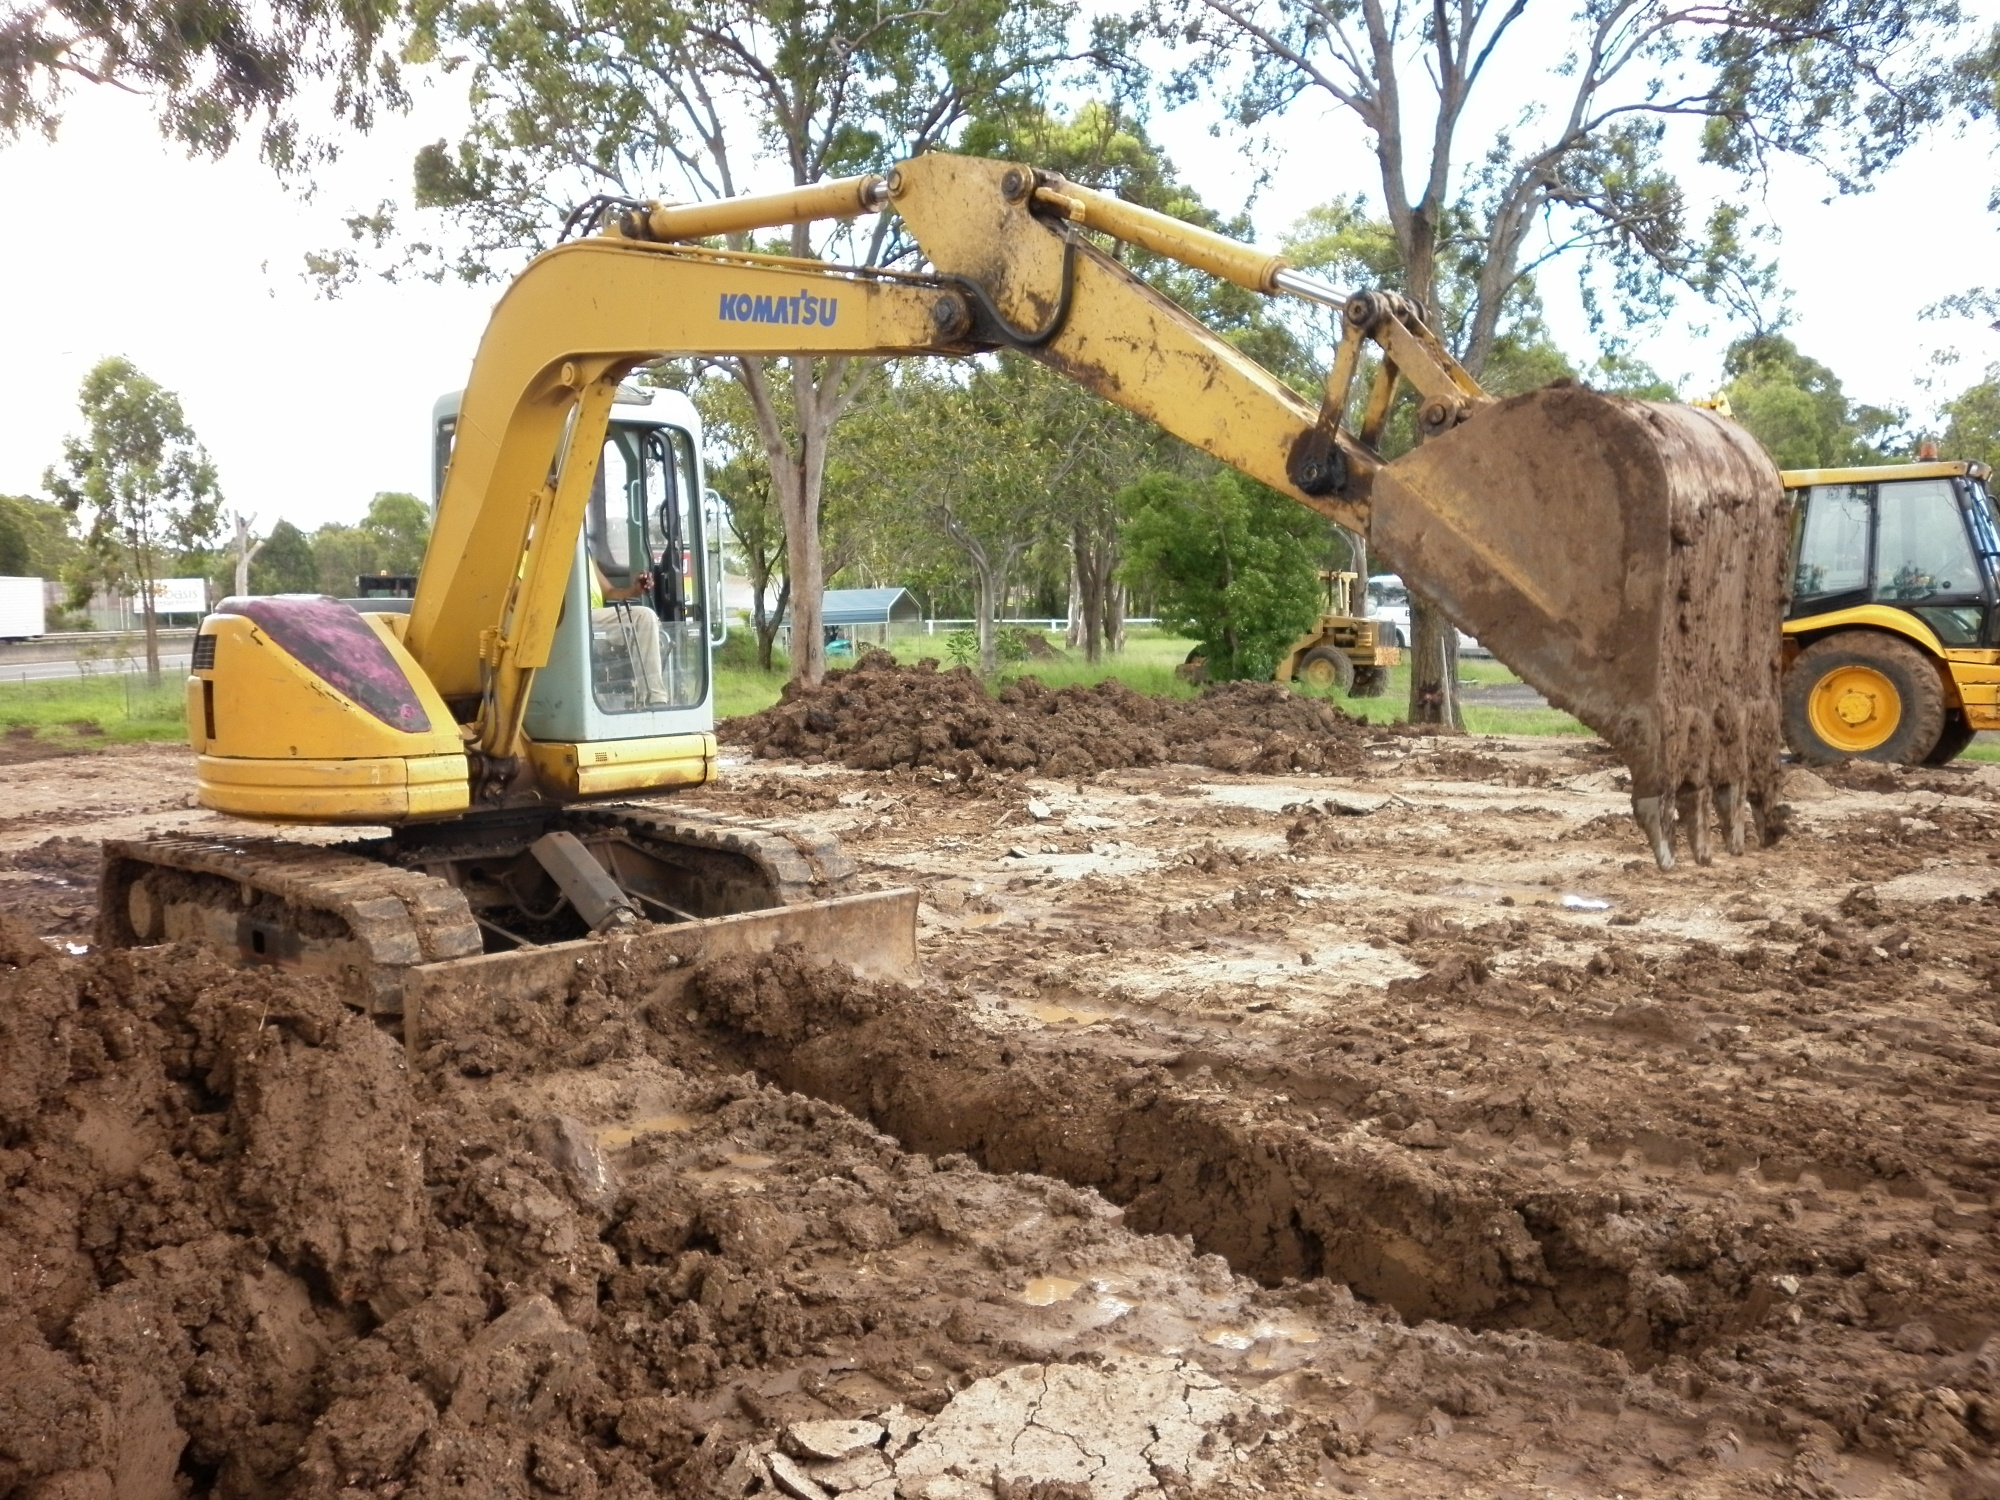 Excavator Digging Trench 1 Smiths Training